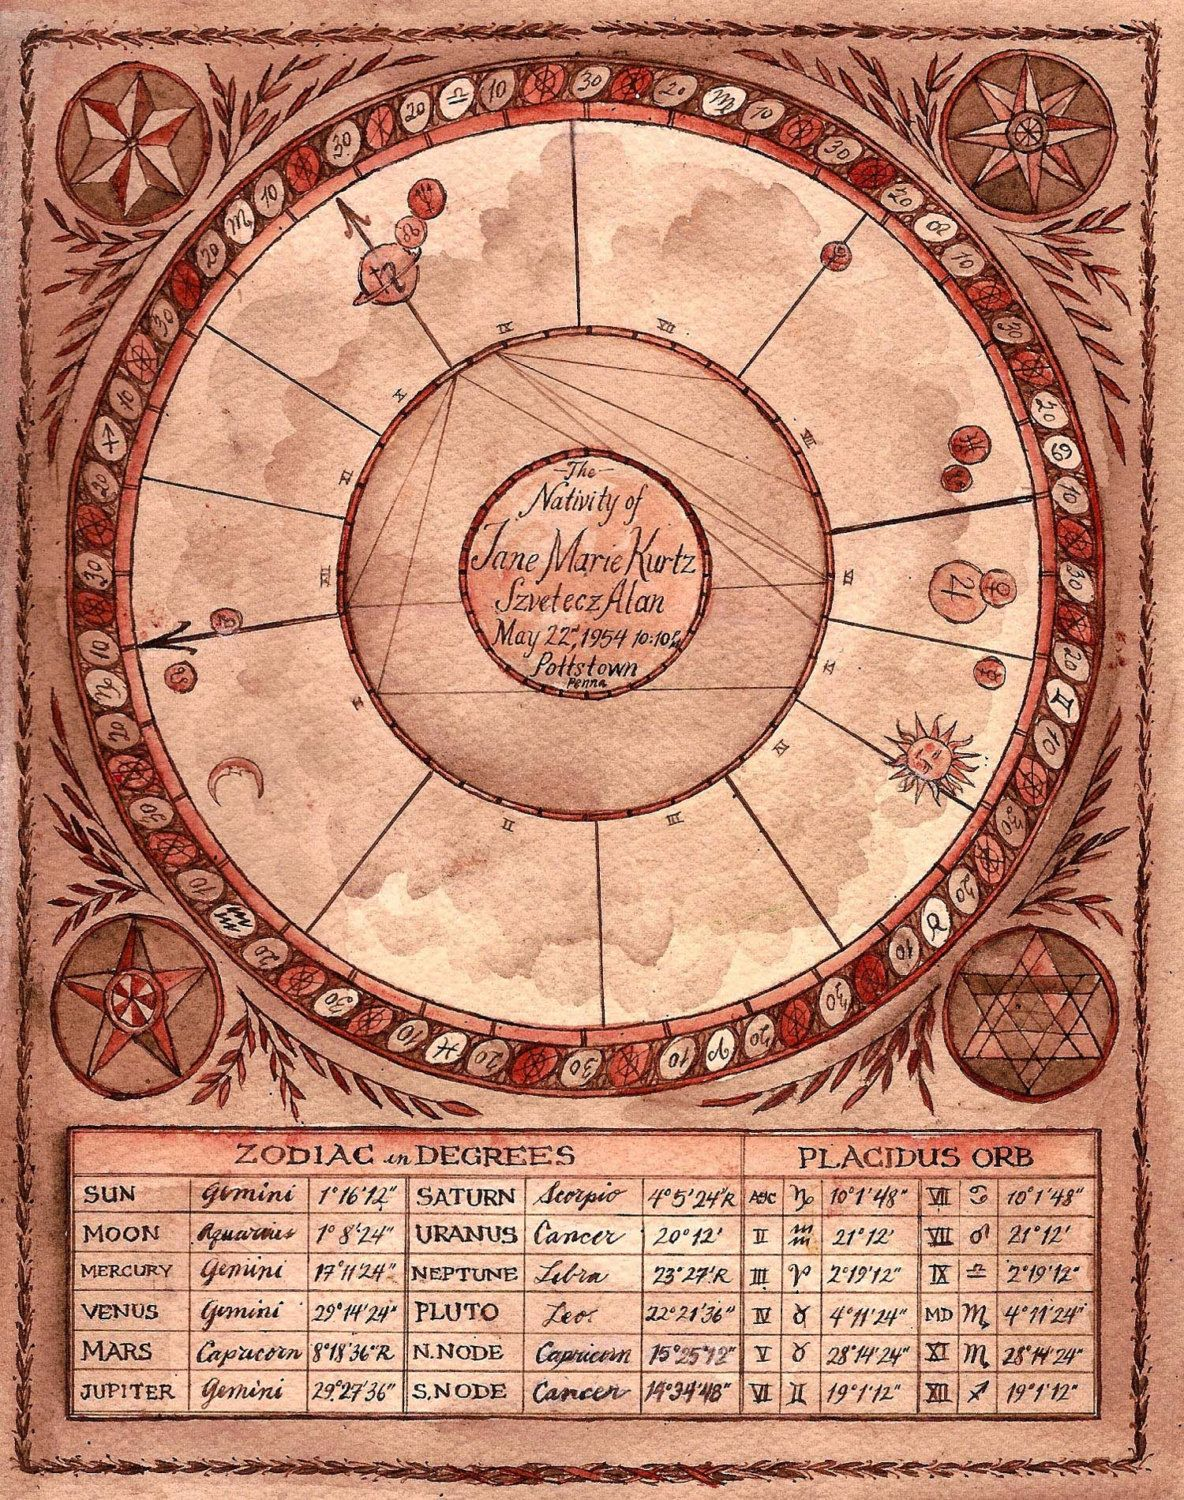 Hand painted astrological chart astrology pinterest hand painted astrological chart nvjuhfo Gallery